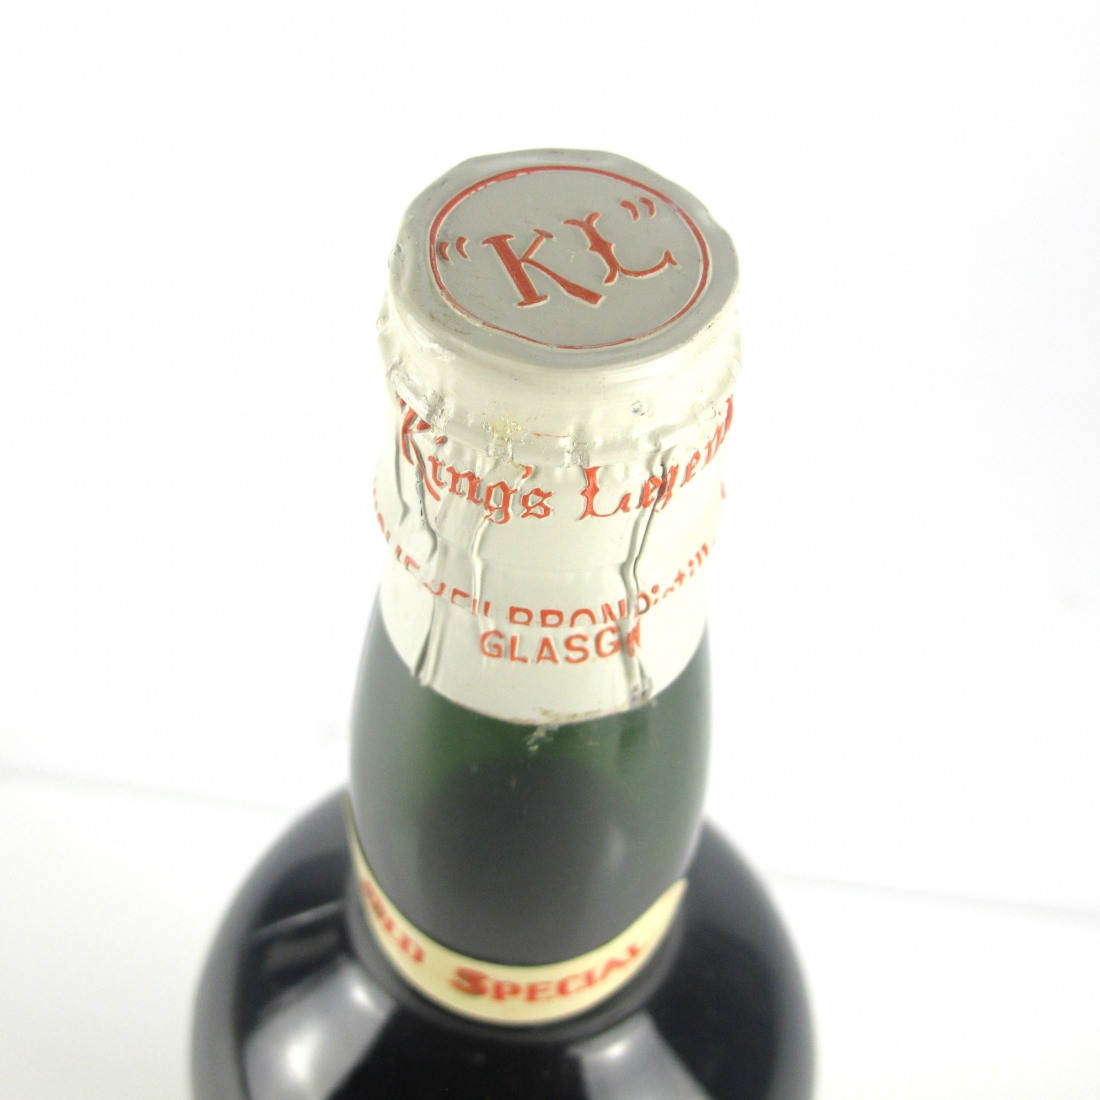 Ainslie's King's Legend Finest Scotch Whisky 1950s